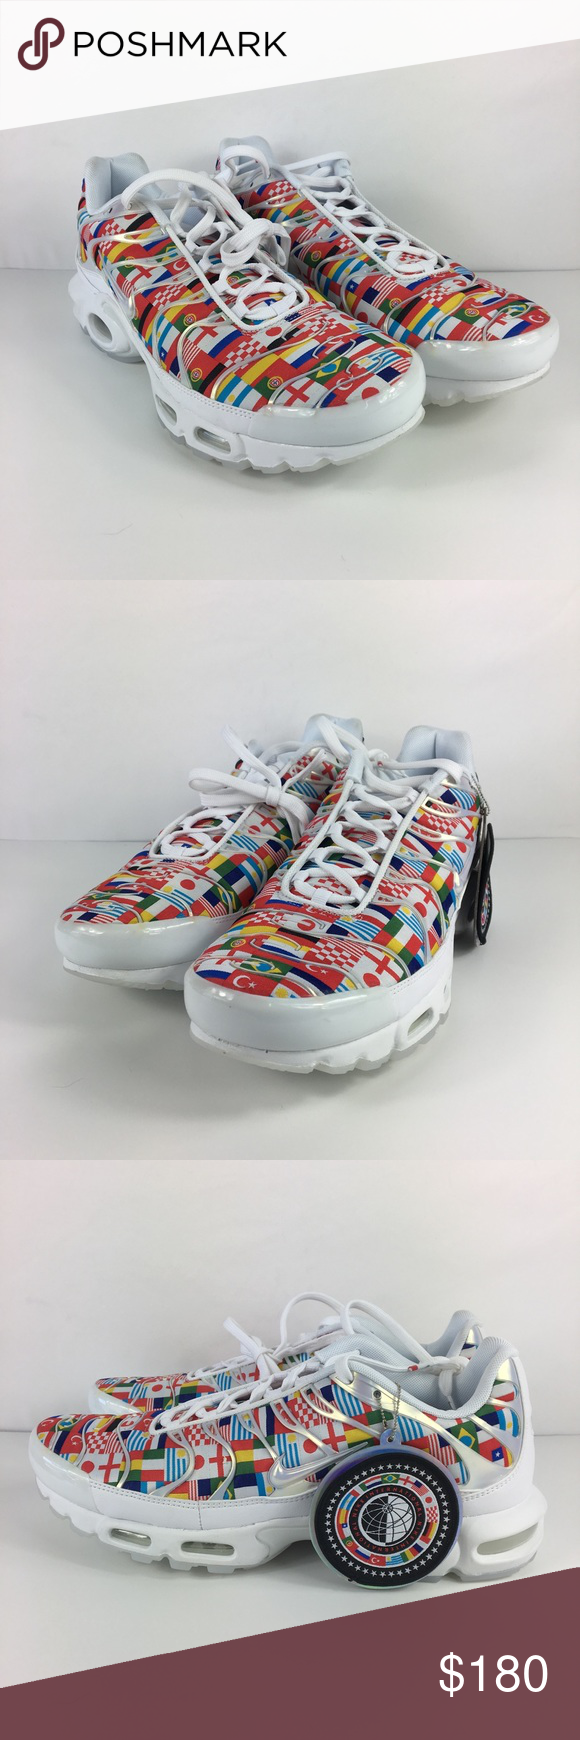 Nike Air Max Plus NIC Mens Shoe World Cup Flag Nike Air Max Plus NIC Sz 12  Mens Shoe White Multi World Cup Flag Pack AO5117-100 New without box a859a74fd